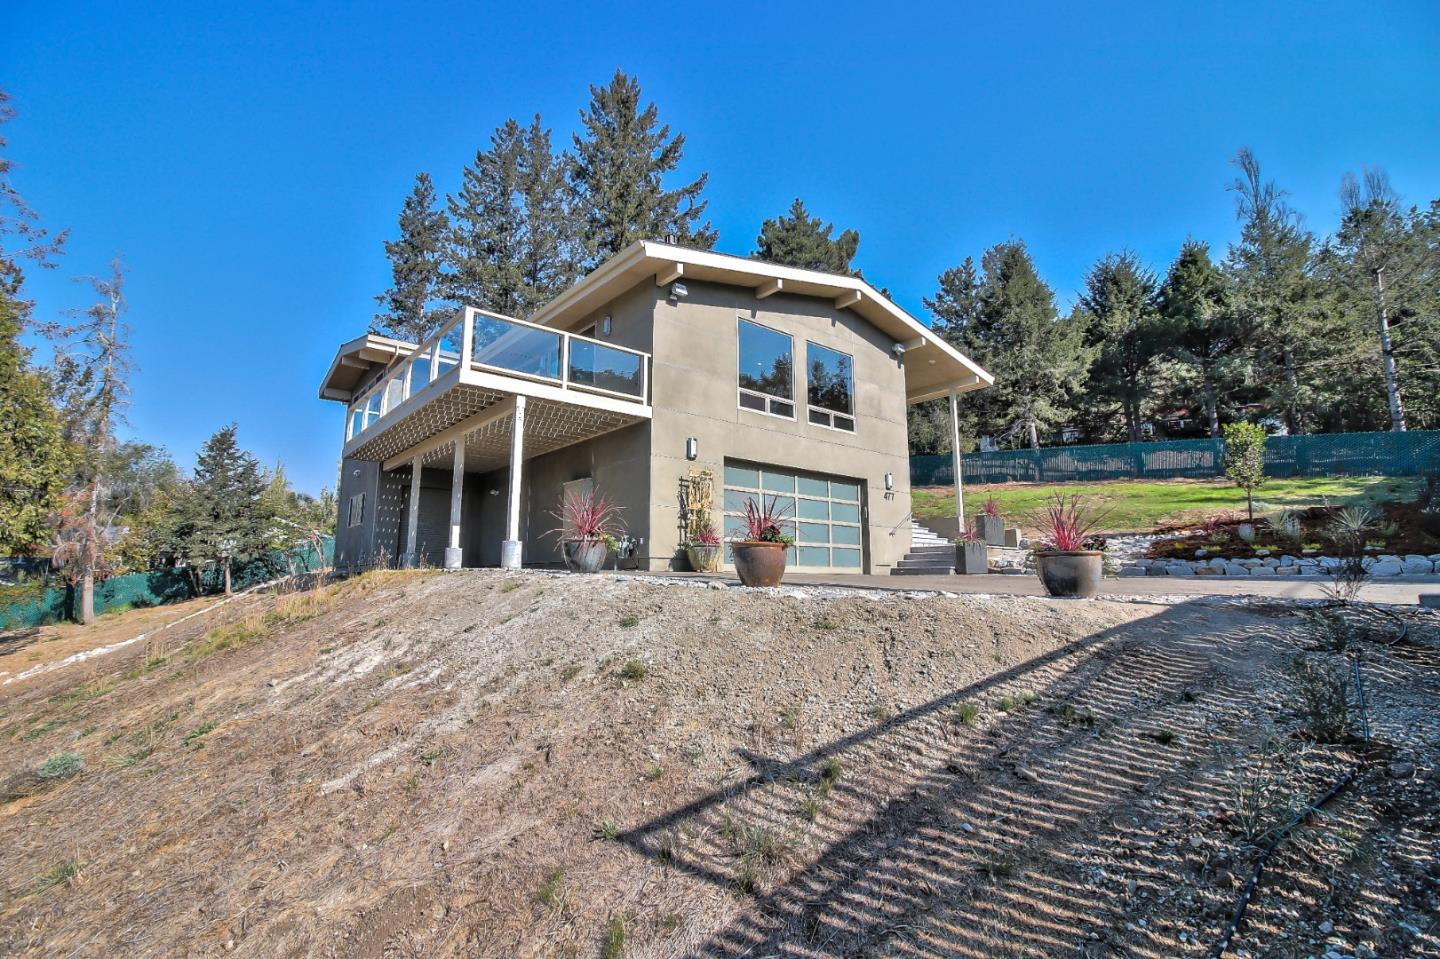 Brand new contemporary home with rental/guest house, perfect for multi-generational living, your au pair, or as a rental. With a focus on natural privacy, this brand new, gated Scotts Valley residence offers a unique balance between nature and structure that few homes manage to achieve. The contemporary floor plan is made up of light-filled spaces that link to the outdoors and captivating vistas. Just minutes to Santa Cruz and historic downtown Los Gatos. The main level Master Suite has a spa-like bathroom finished with imported Italian tile, and a door leading to a private deck with beautiful views. In addition to the homes striking living space, the professionally-equipped kitchen stands ready to cater gourmet meals on nearly any scale, offering a center island finished in quartz, custom Riff cut white oak cabinetry, and top of the line appliances. Access to coveted schools including the distinguished Brook Knoll Elementary - a Gold Ribbon Award Winner. Generous lot for your orchard!